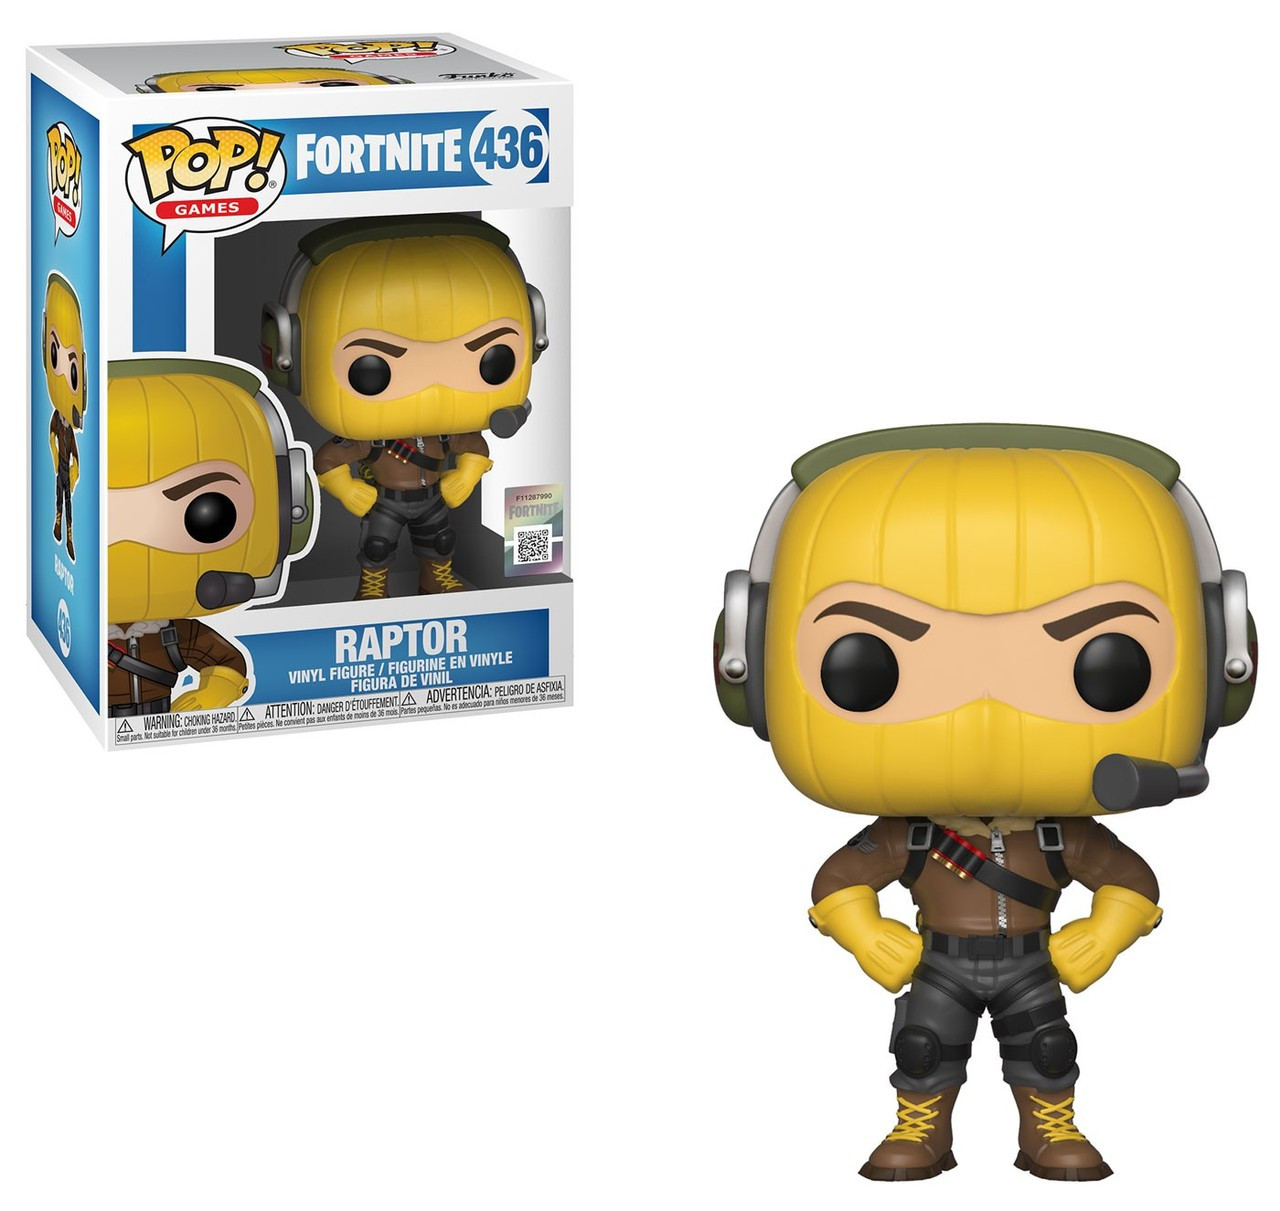 Standard Fortnite Highrise Assault Trooper VInyl Figure 431 Funko Pop